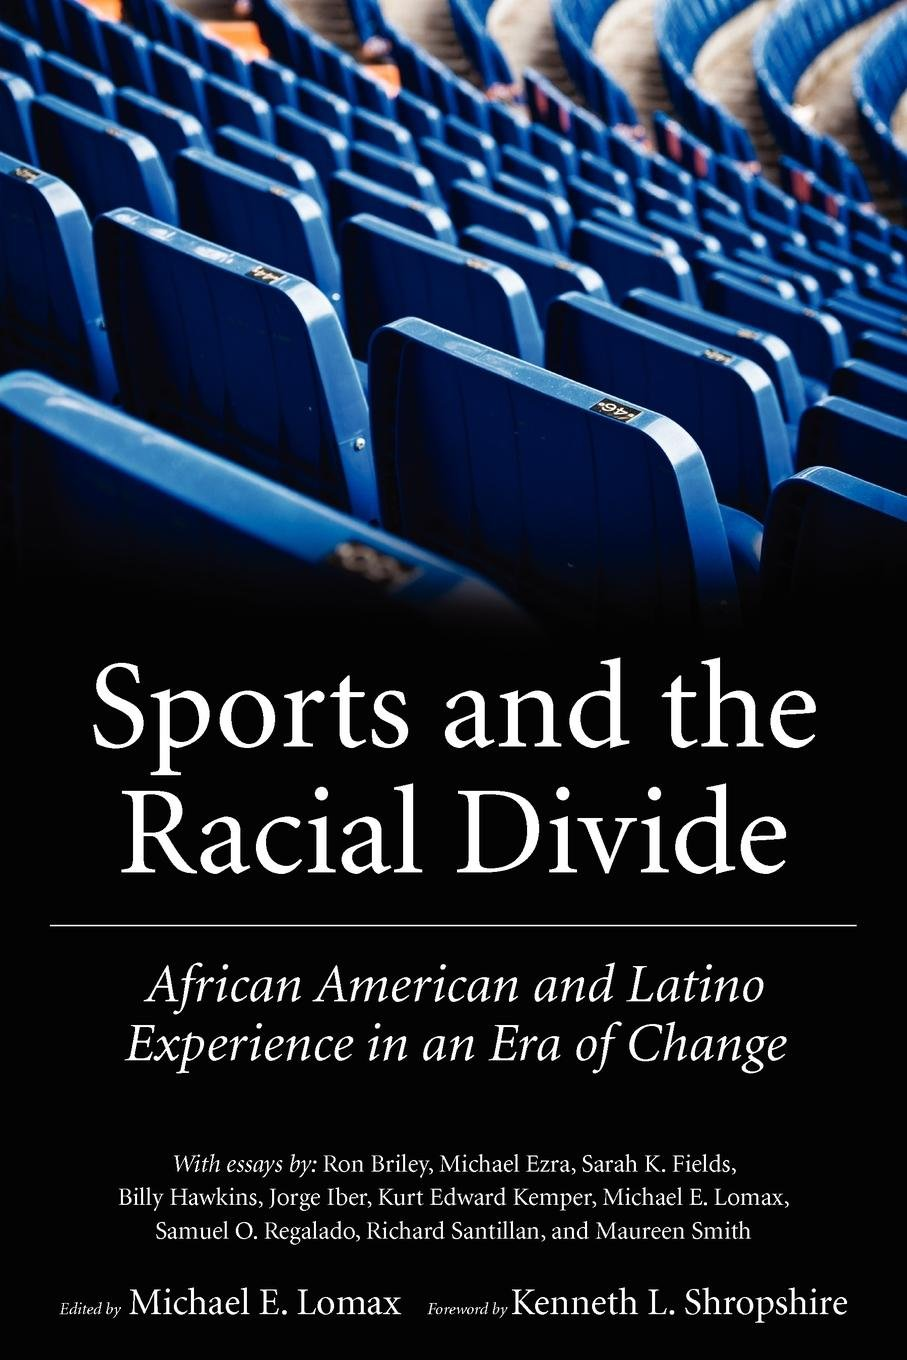 Read Online Sports and the Racial Divide: African American and Latino Experience in an Era of Change PDF